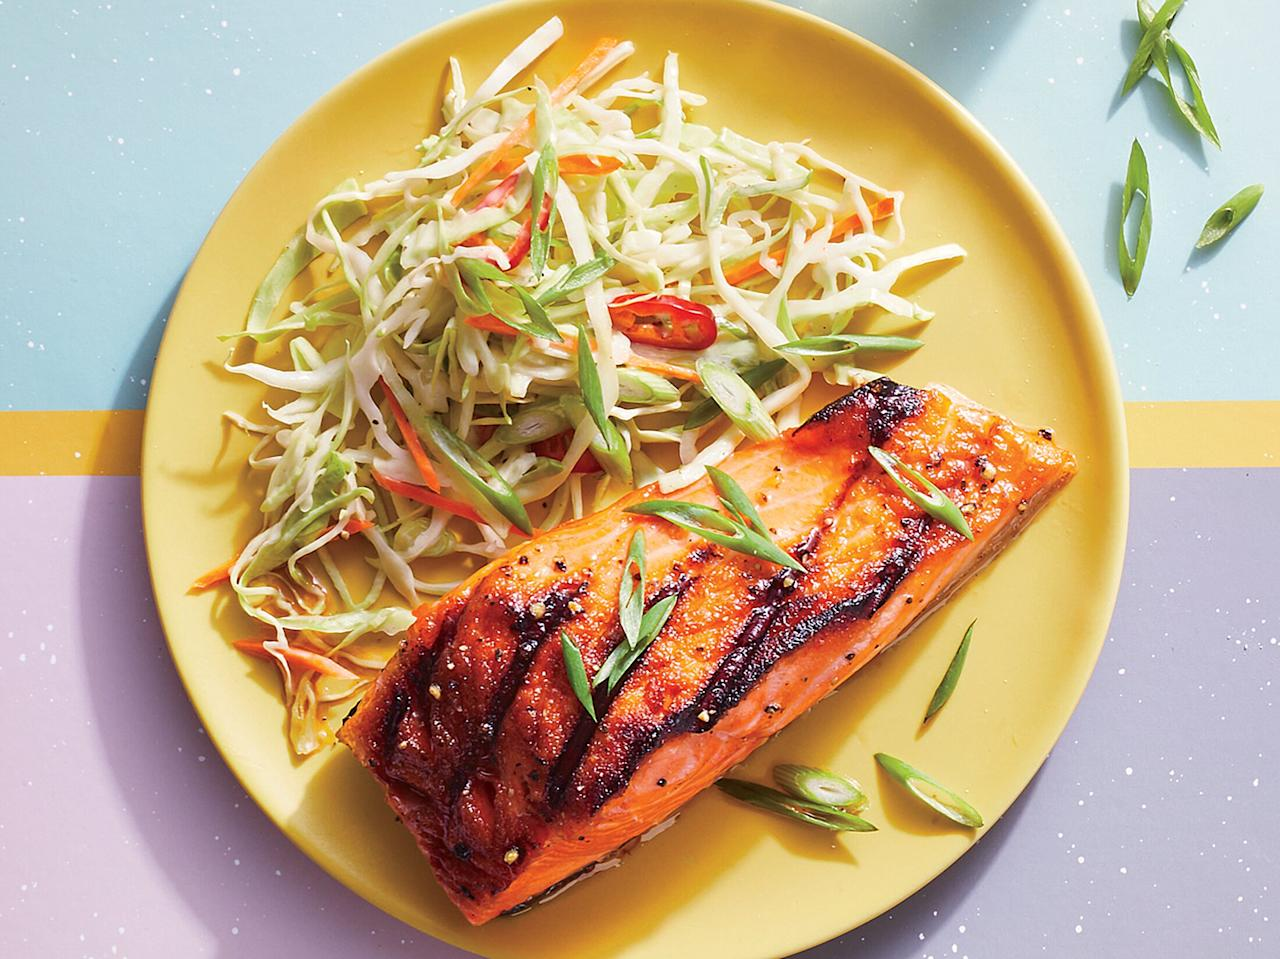 """<p>This recipe hits all the notes of a classic barbecue dish, but with omega-3-rich fish. Use an outdoor grill or indoor grill pan.</p> <p> <a href=""""https://www.cookinglight.com/recipes/bourbon-glazed-salmon-with-firecracker-slaw"""">View Recipe: Bourbon-Glazed Salmon With Firecracker Slaw</a></p>"""